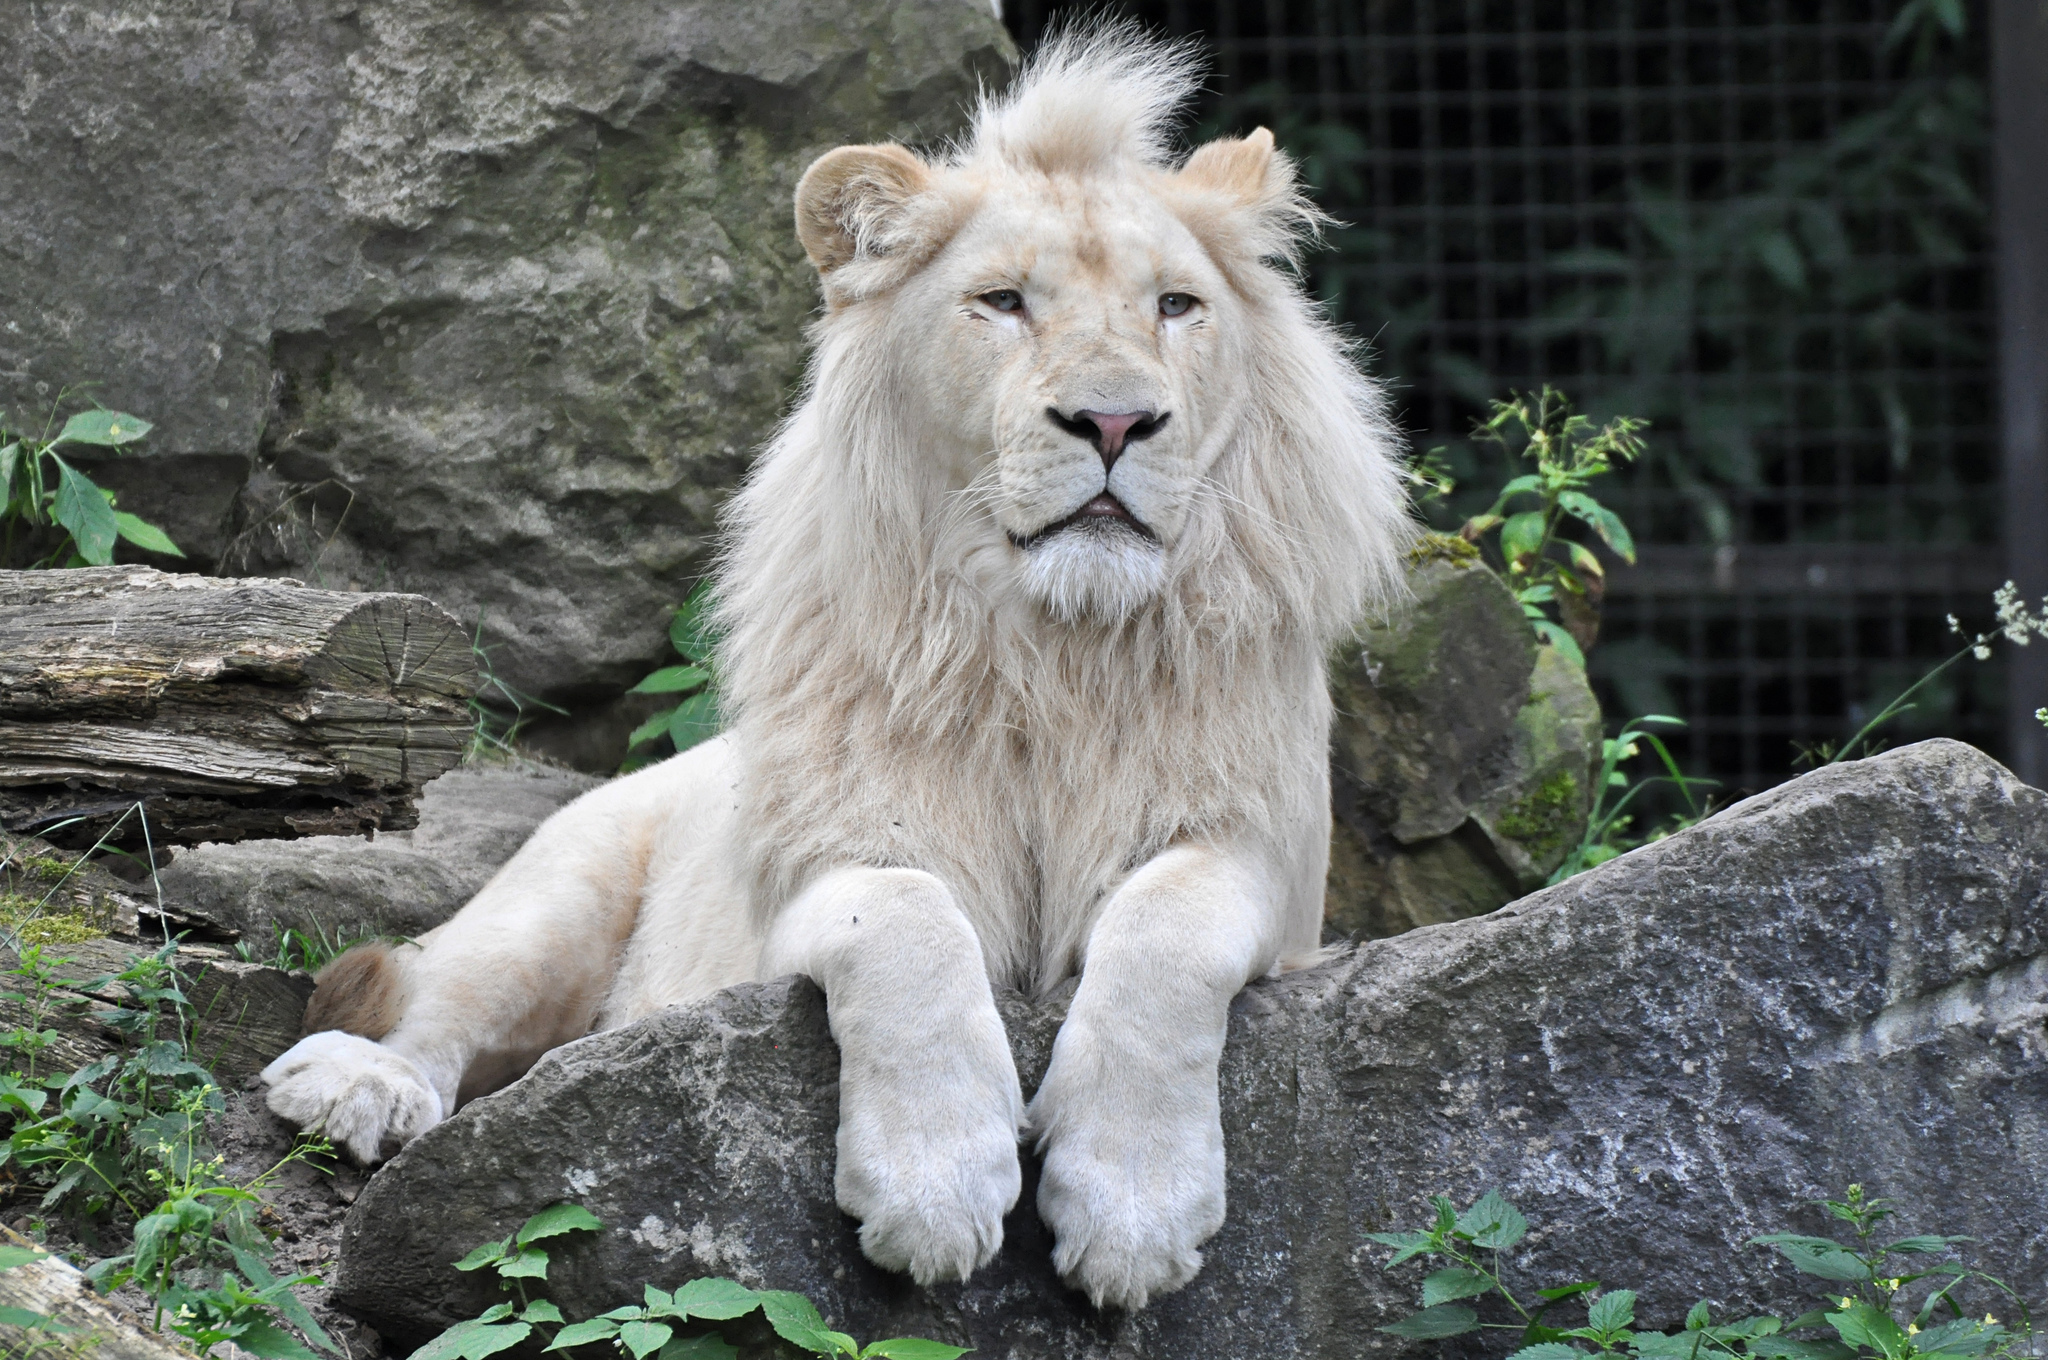 White Lion Wallpapers Images Photos Pictures Backgrounds